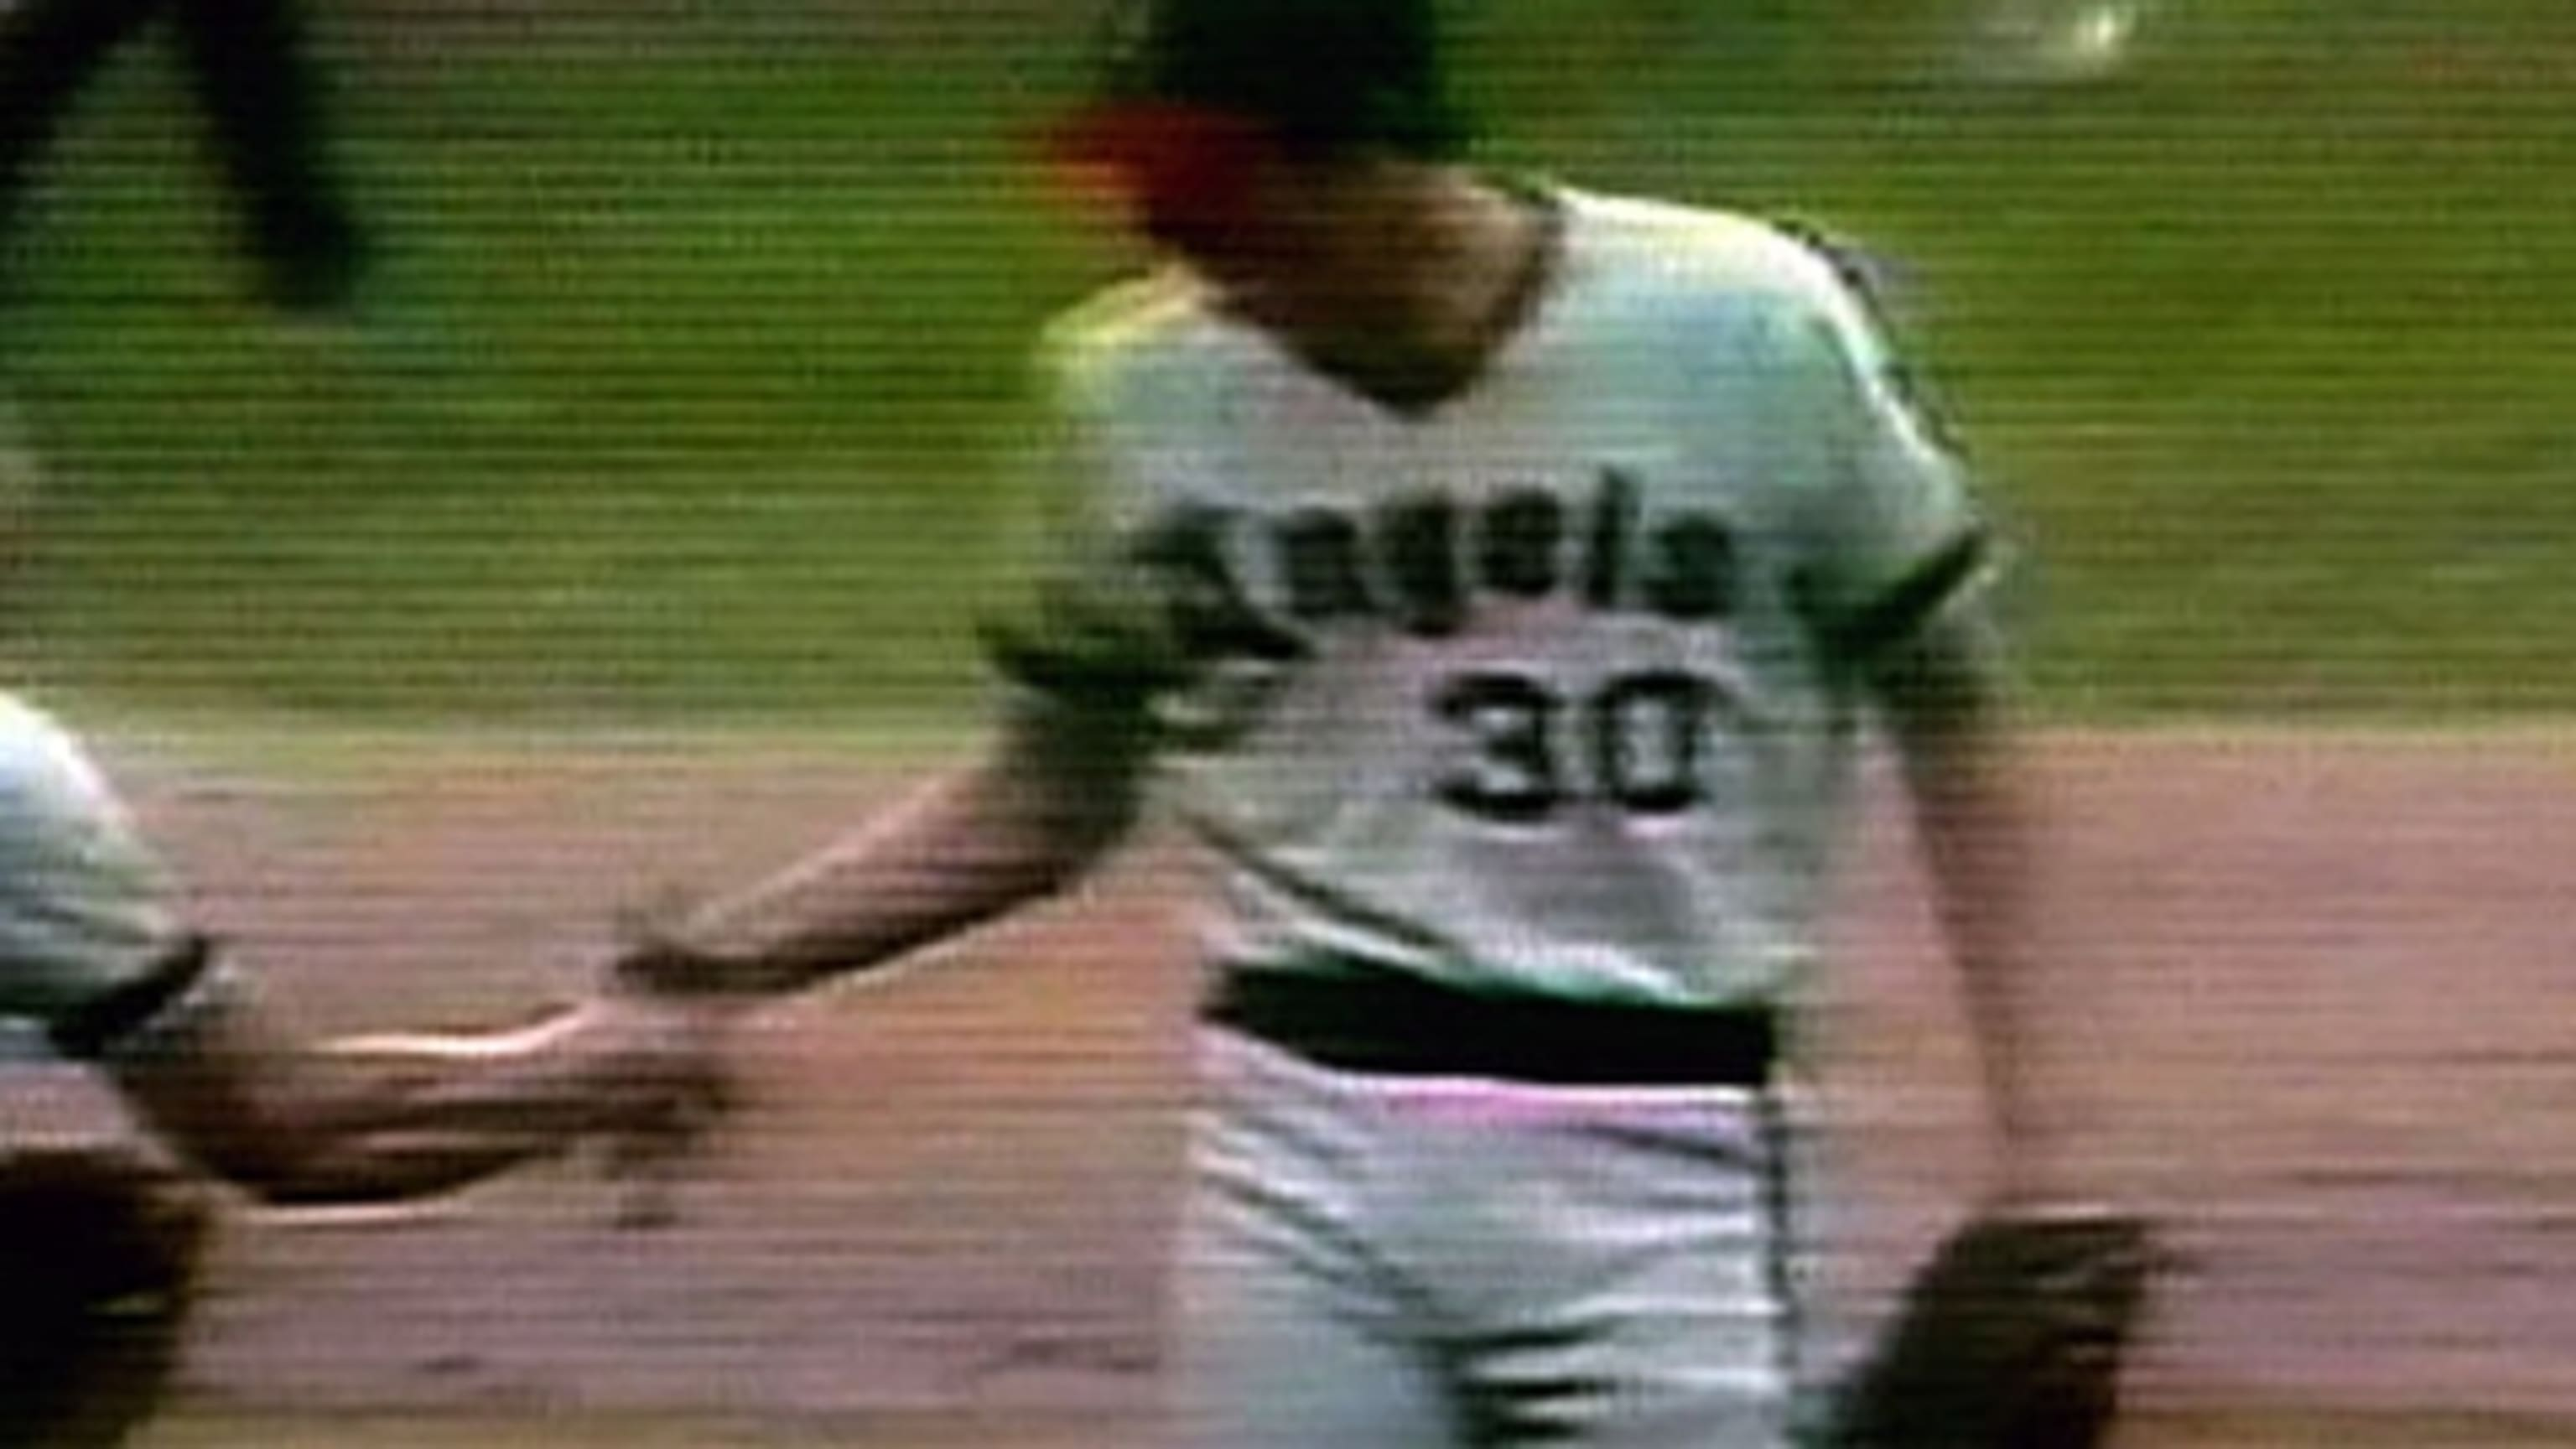 MLB Network Remembers: May 1973